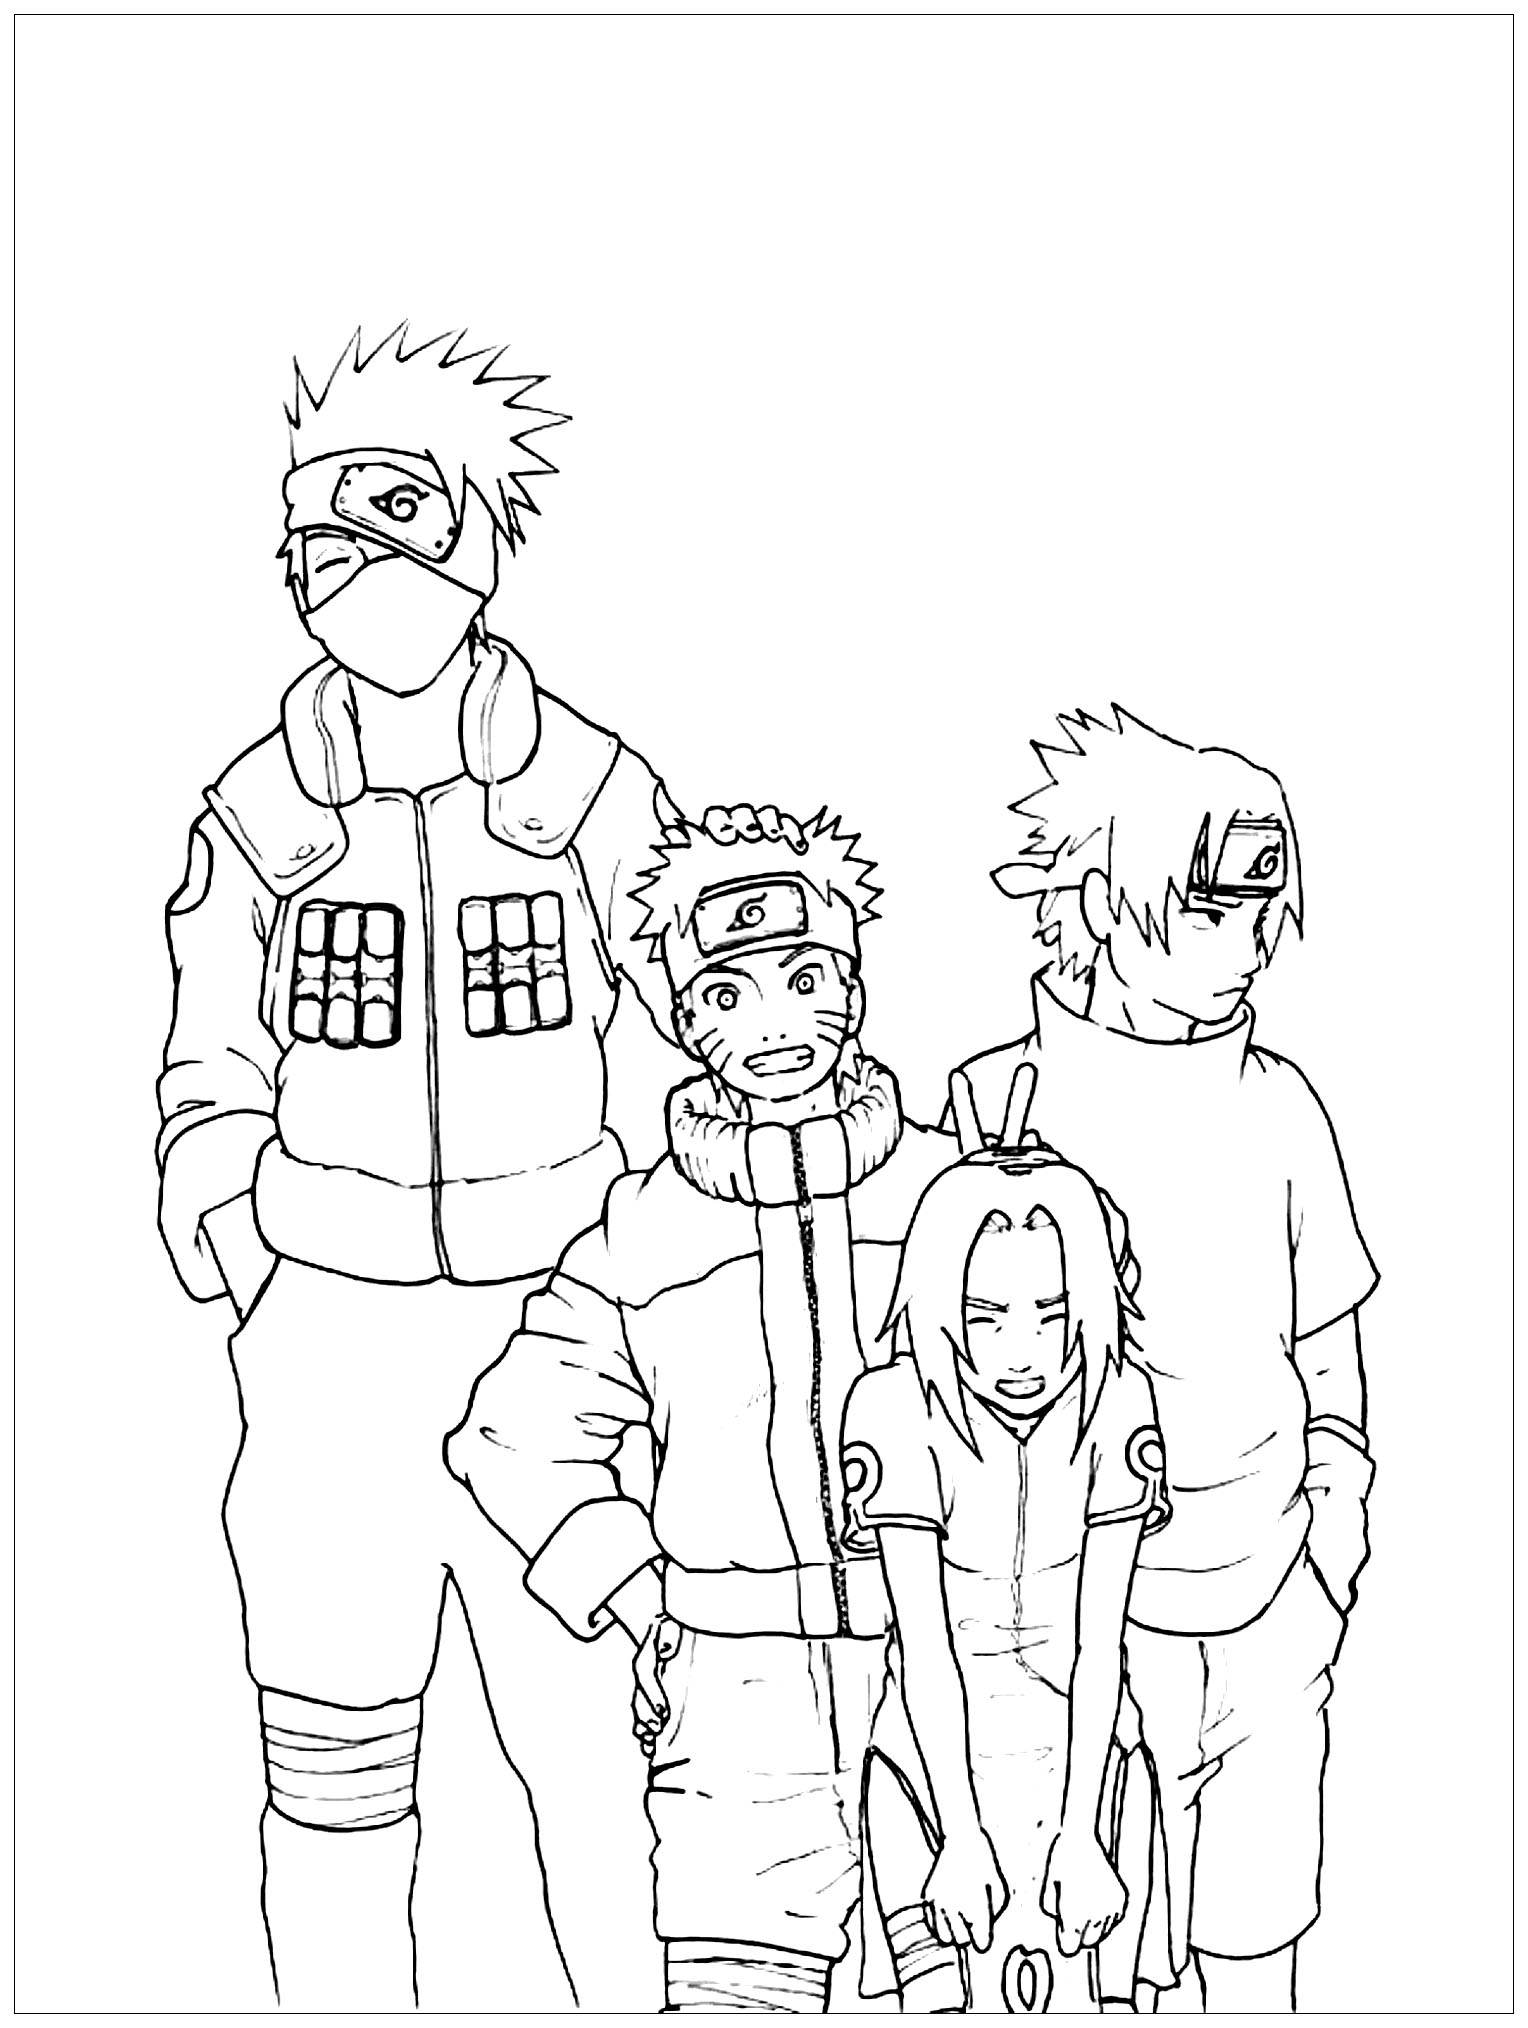 Funny free Naruto coloring page to print and color